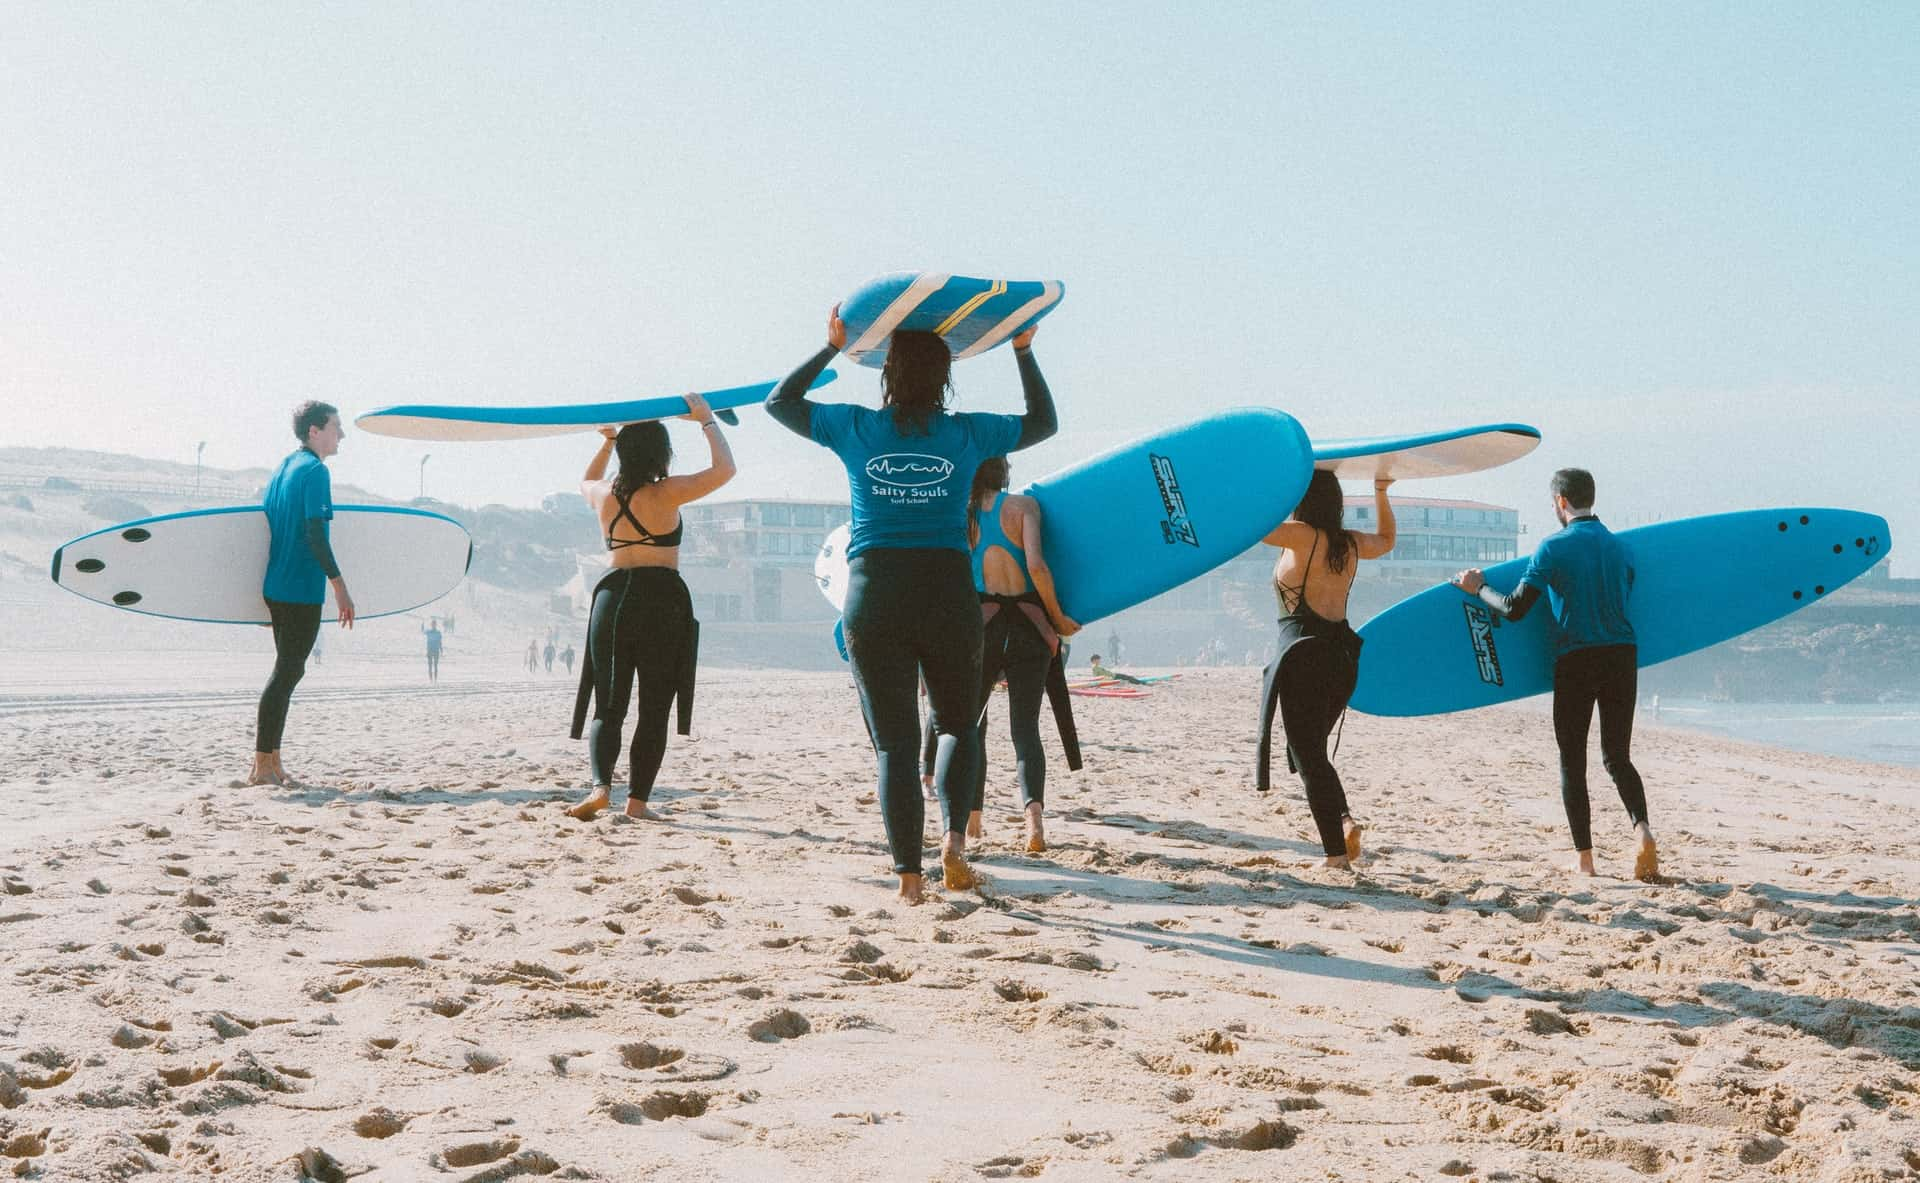 Group surf lessons gathering on beach image